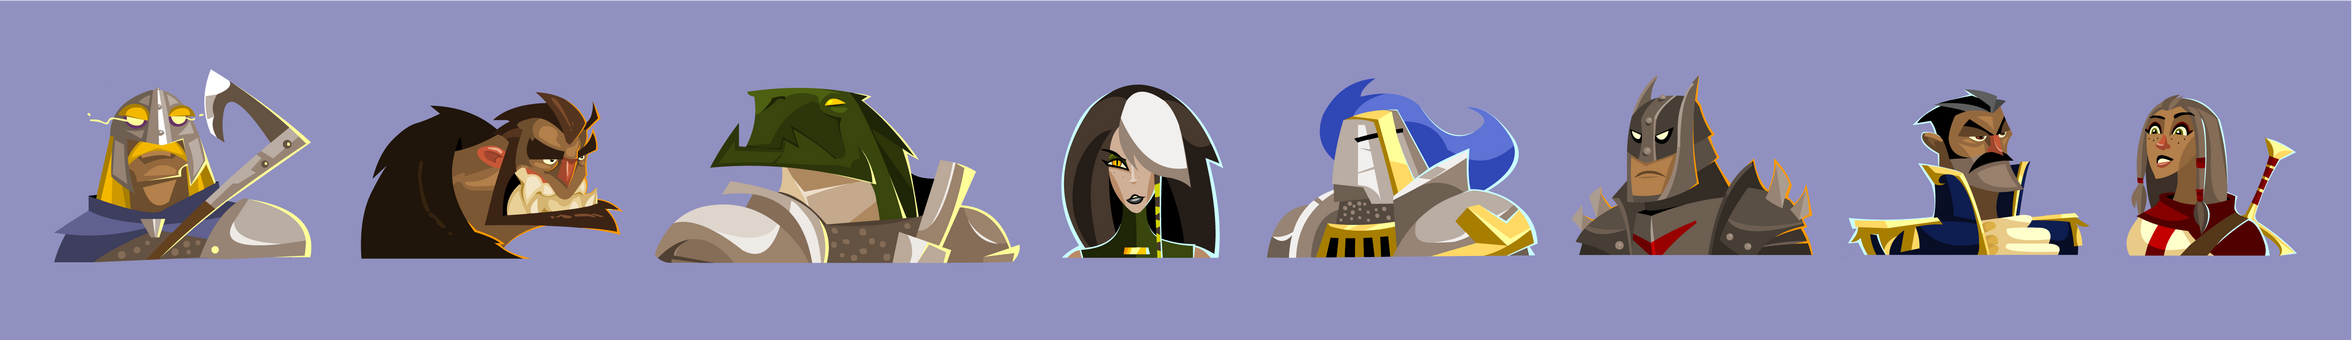 DnD Party Portraits vol. V - DIscards by hangemhigh13